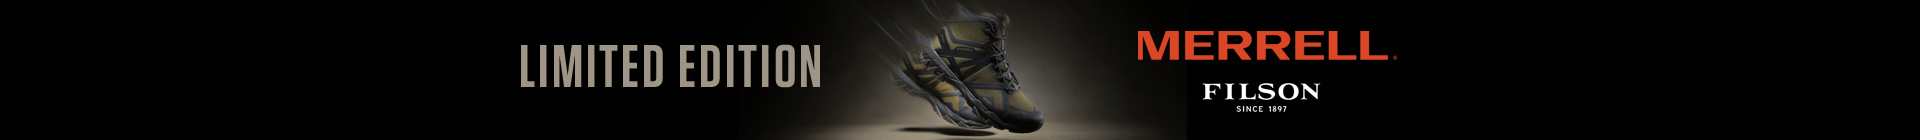 Limited edition - Merrell Filson.